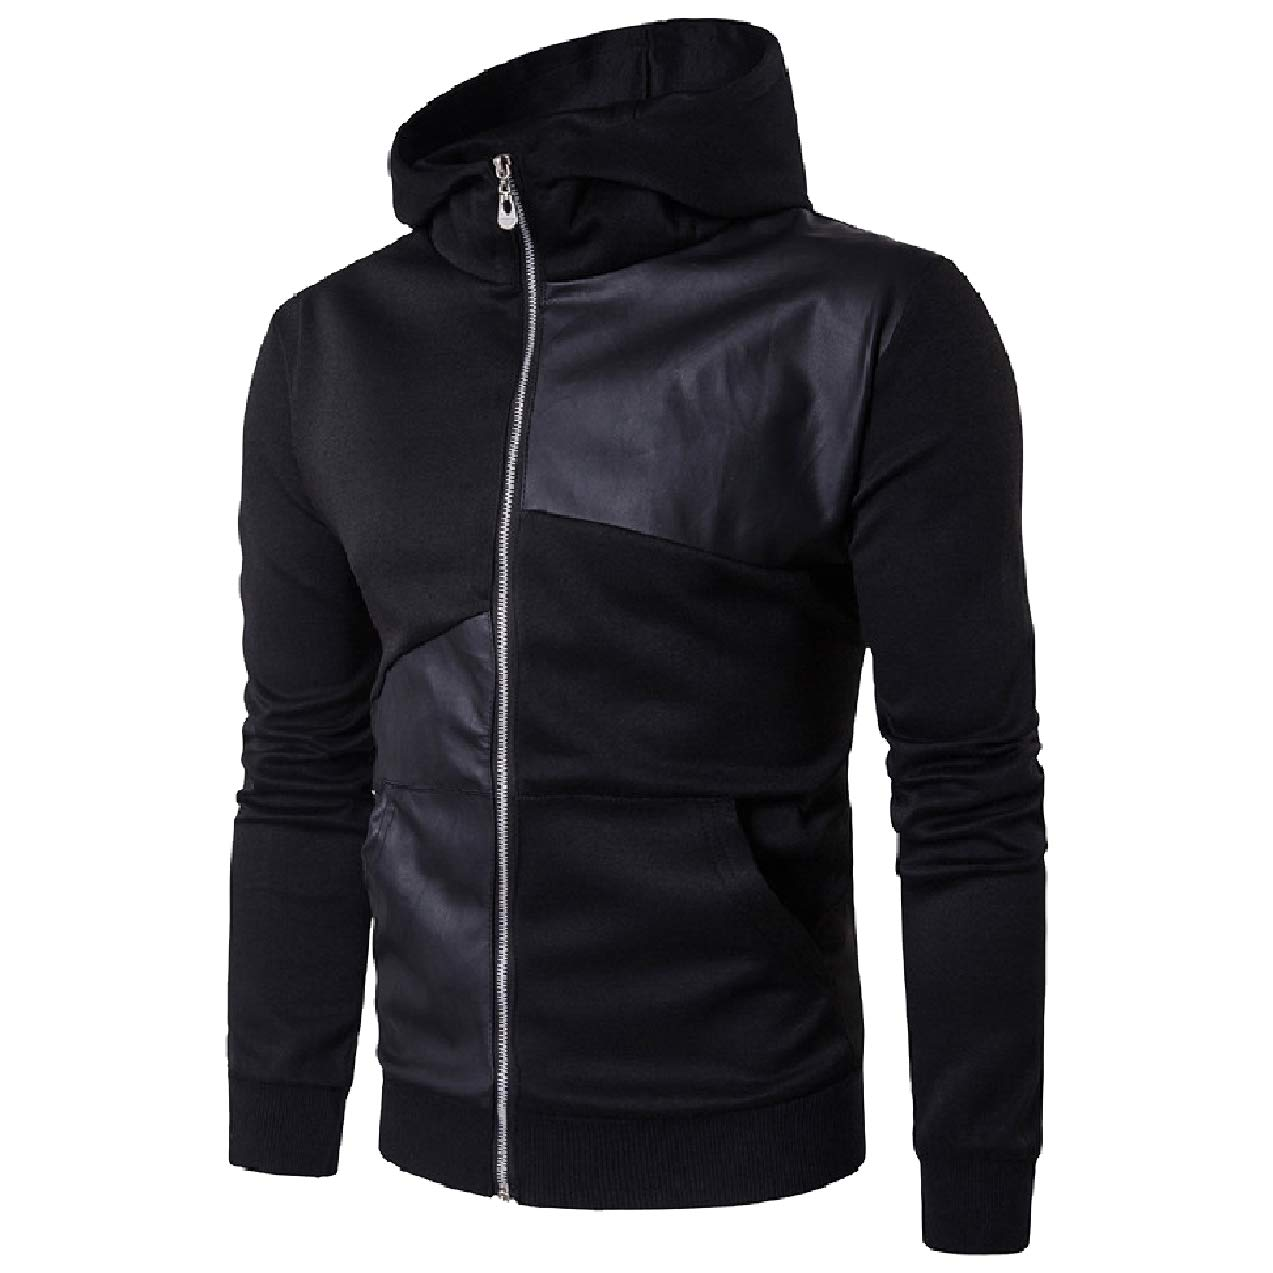 Zimaes-Men Coat Outwear Zip-Up Faux Leather PU Vogue Sweatshirt Hoodies